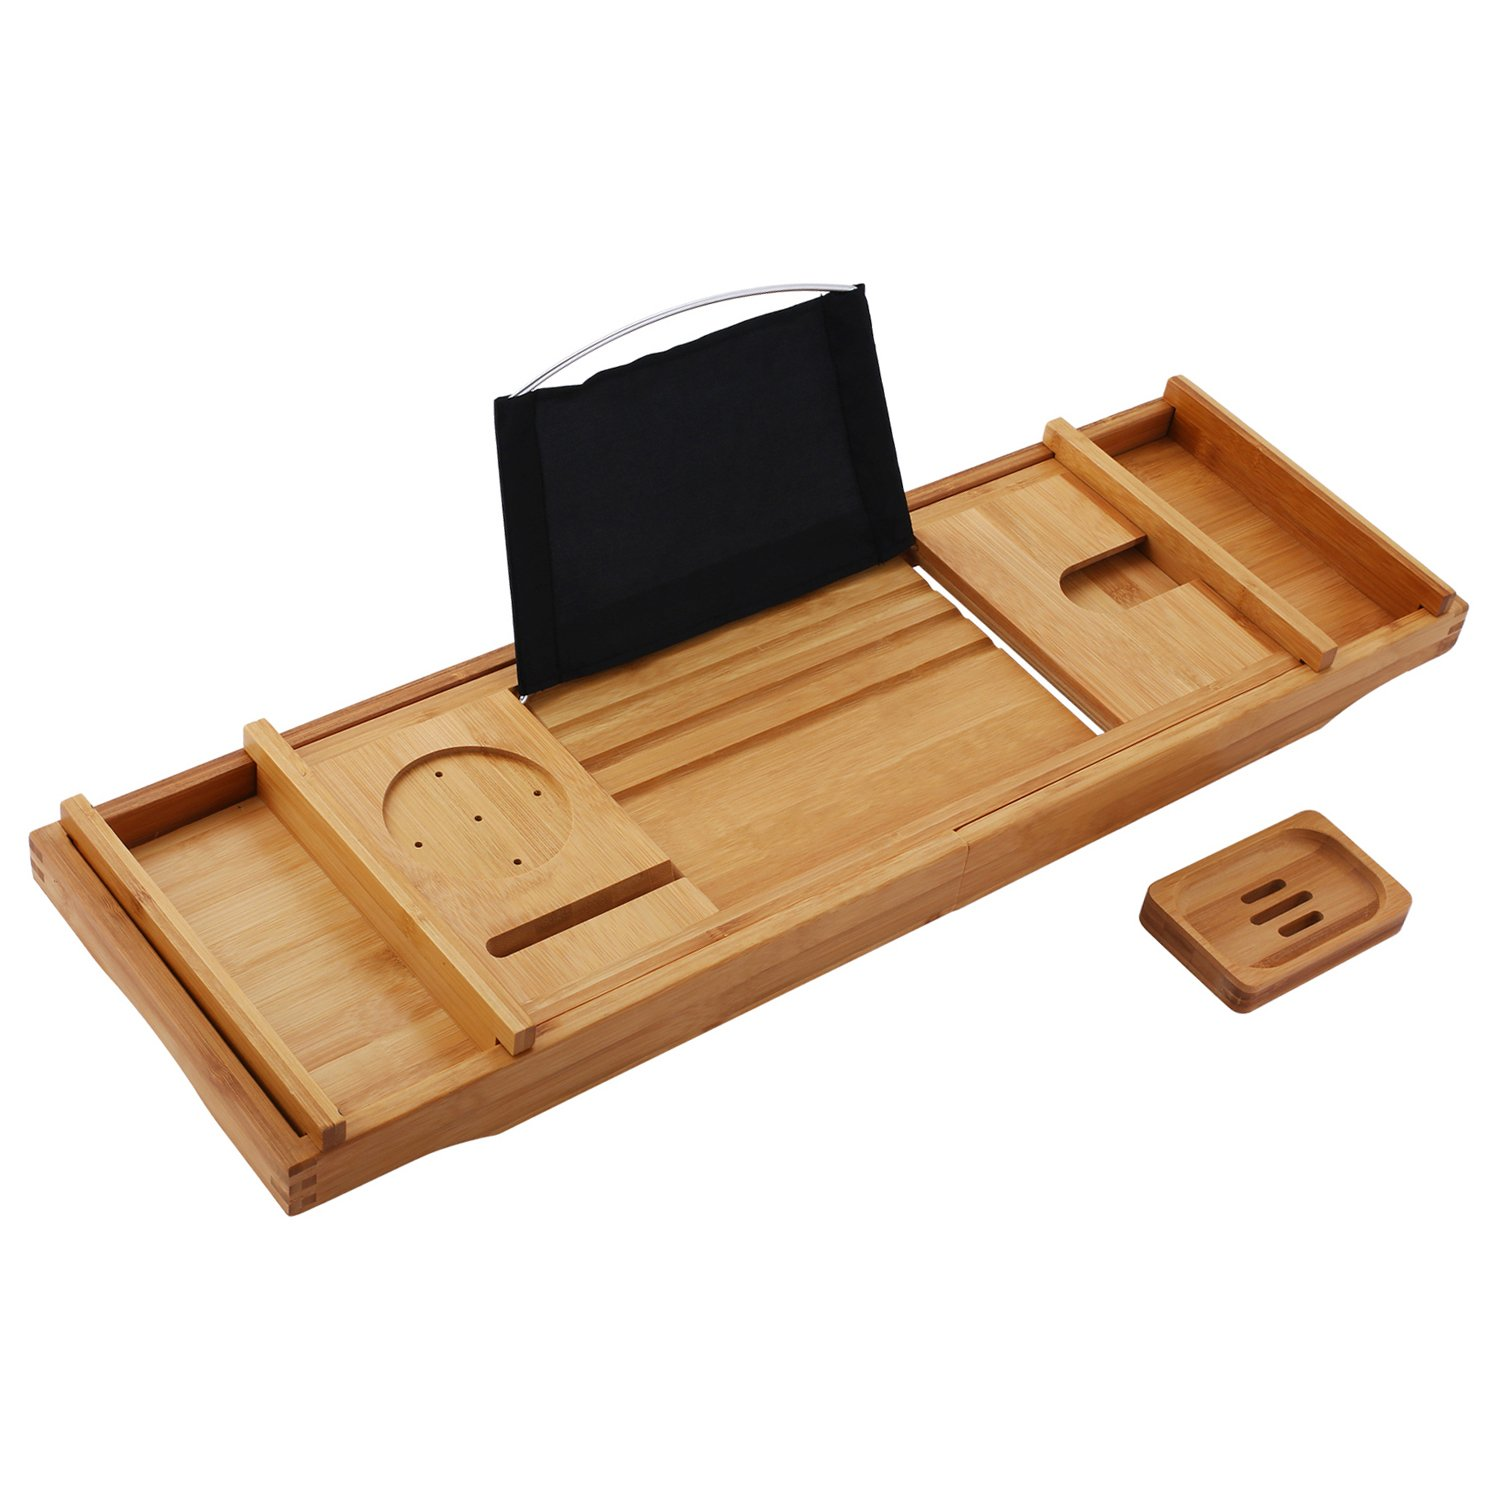 Bath Tray for Tub, Adjustable Wood Bamboo Bathtub Caddy Tray Organizer with Extending Sides - Waterproof Book and Tablet Holder, Wine/Candle/Phone Holder and Free Soap Dish (US Stock)